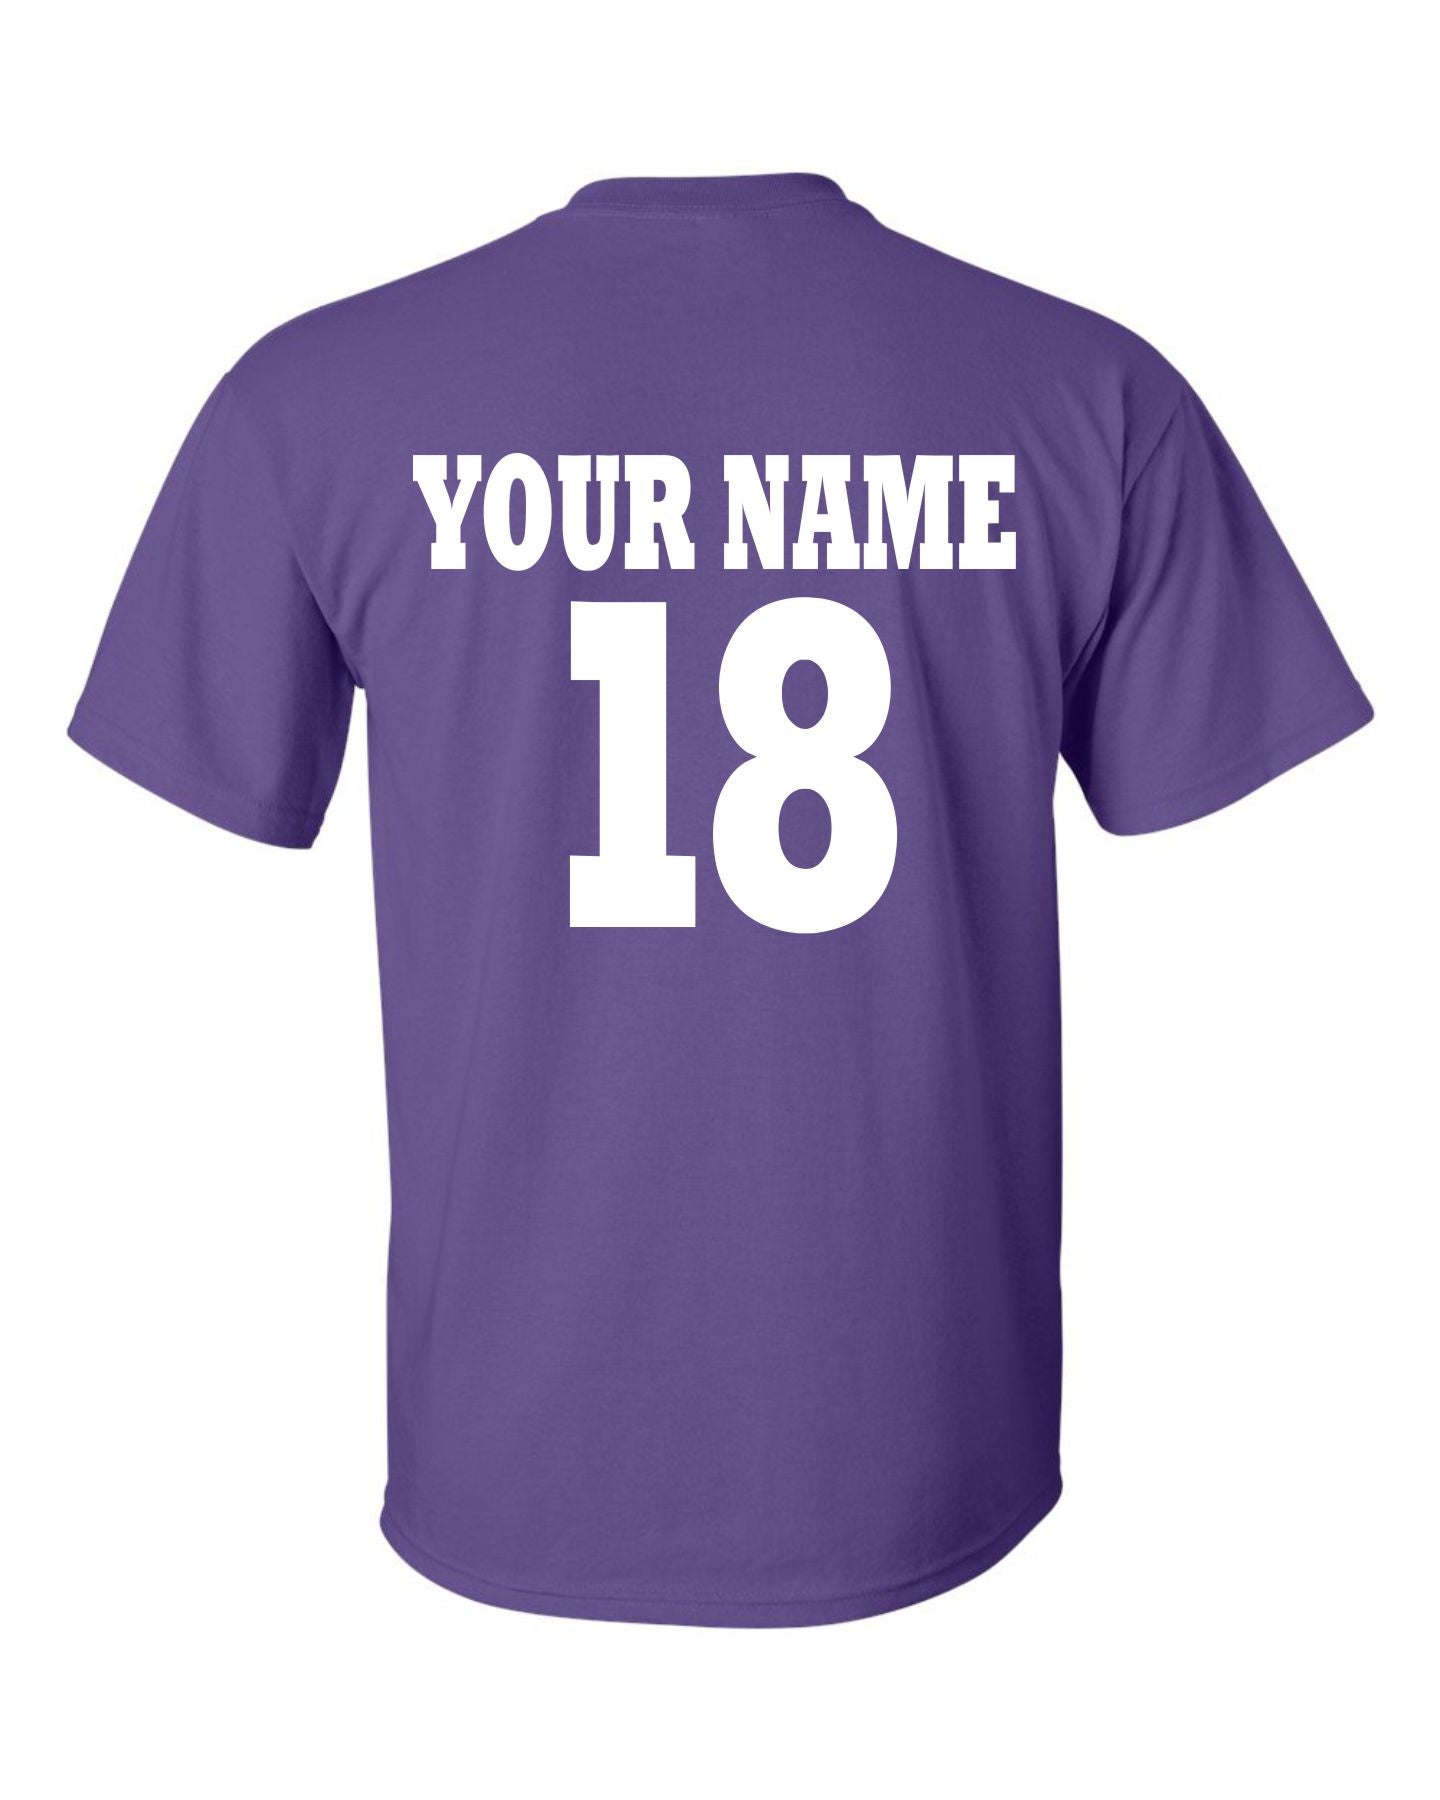 Custom Personalization Name & Number for Team Gear